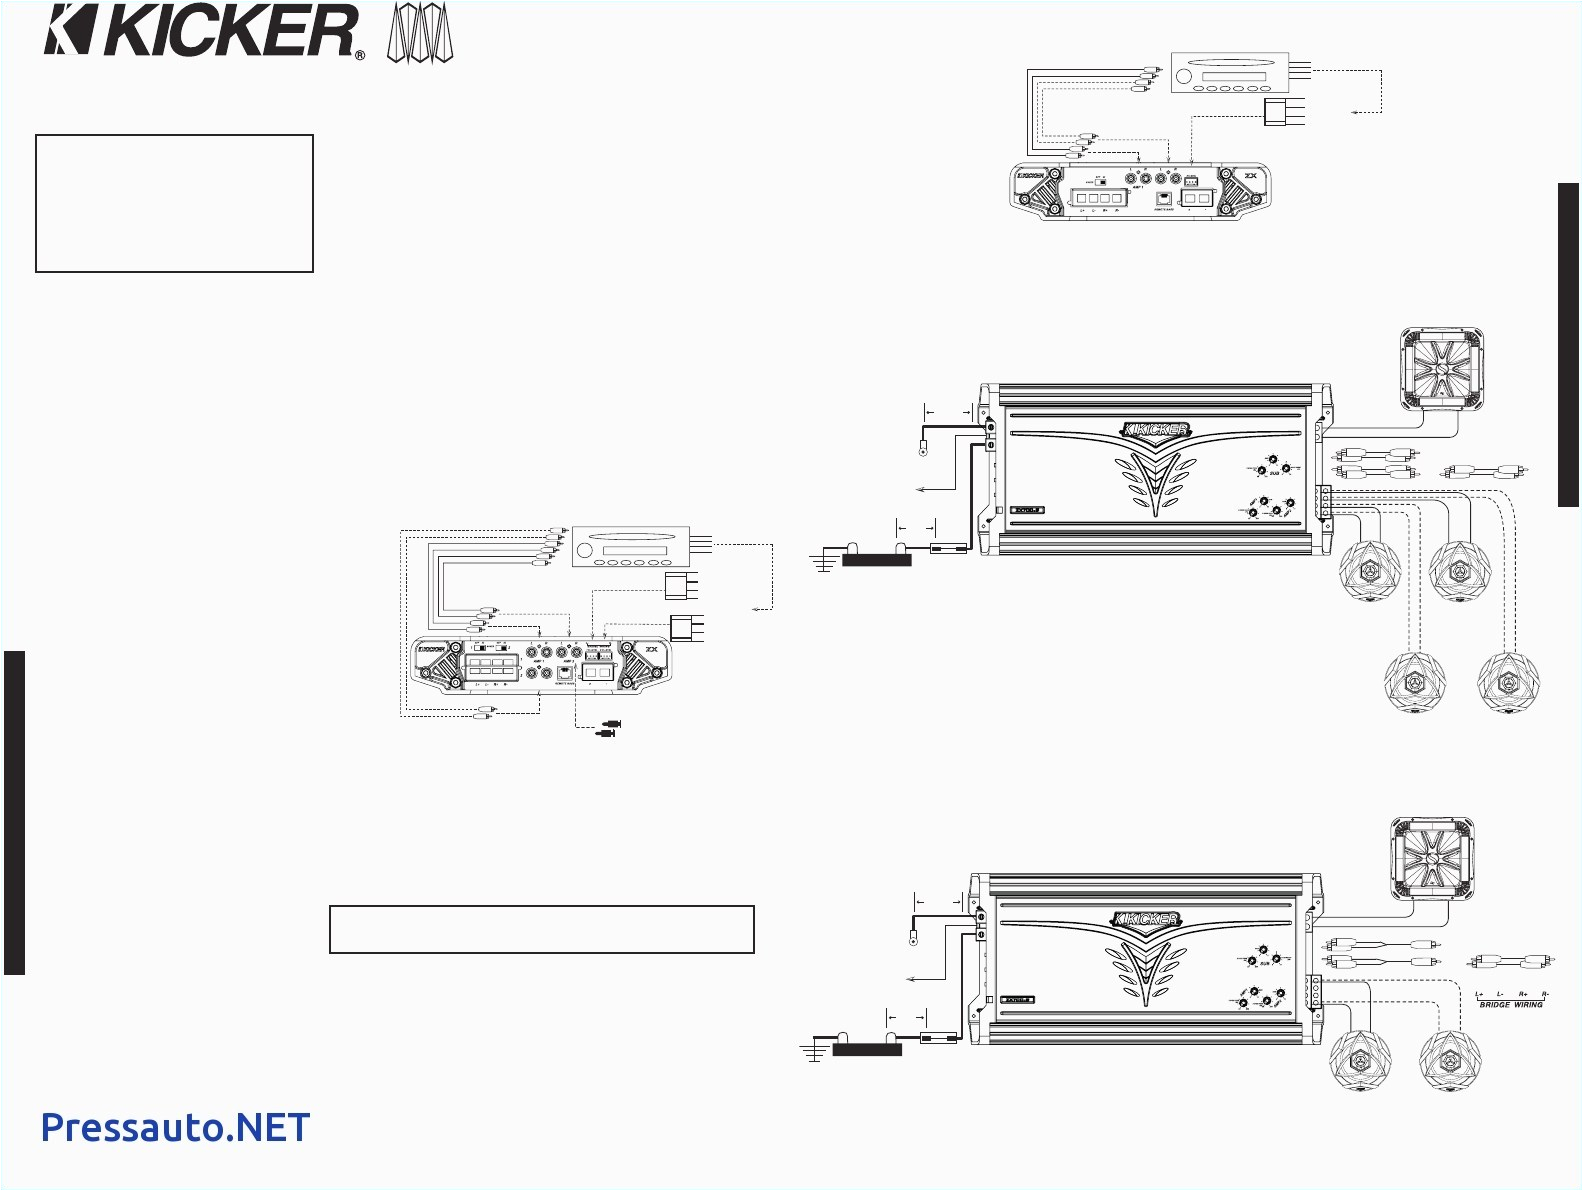 circuit kicker bass station wiring diagram of for subs and amp jpg